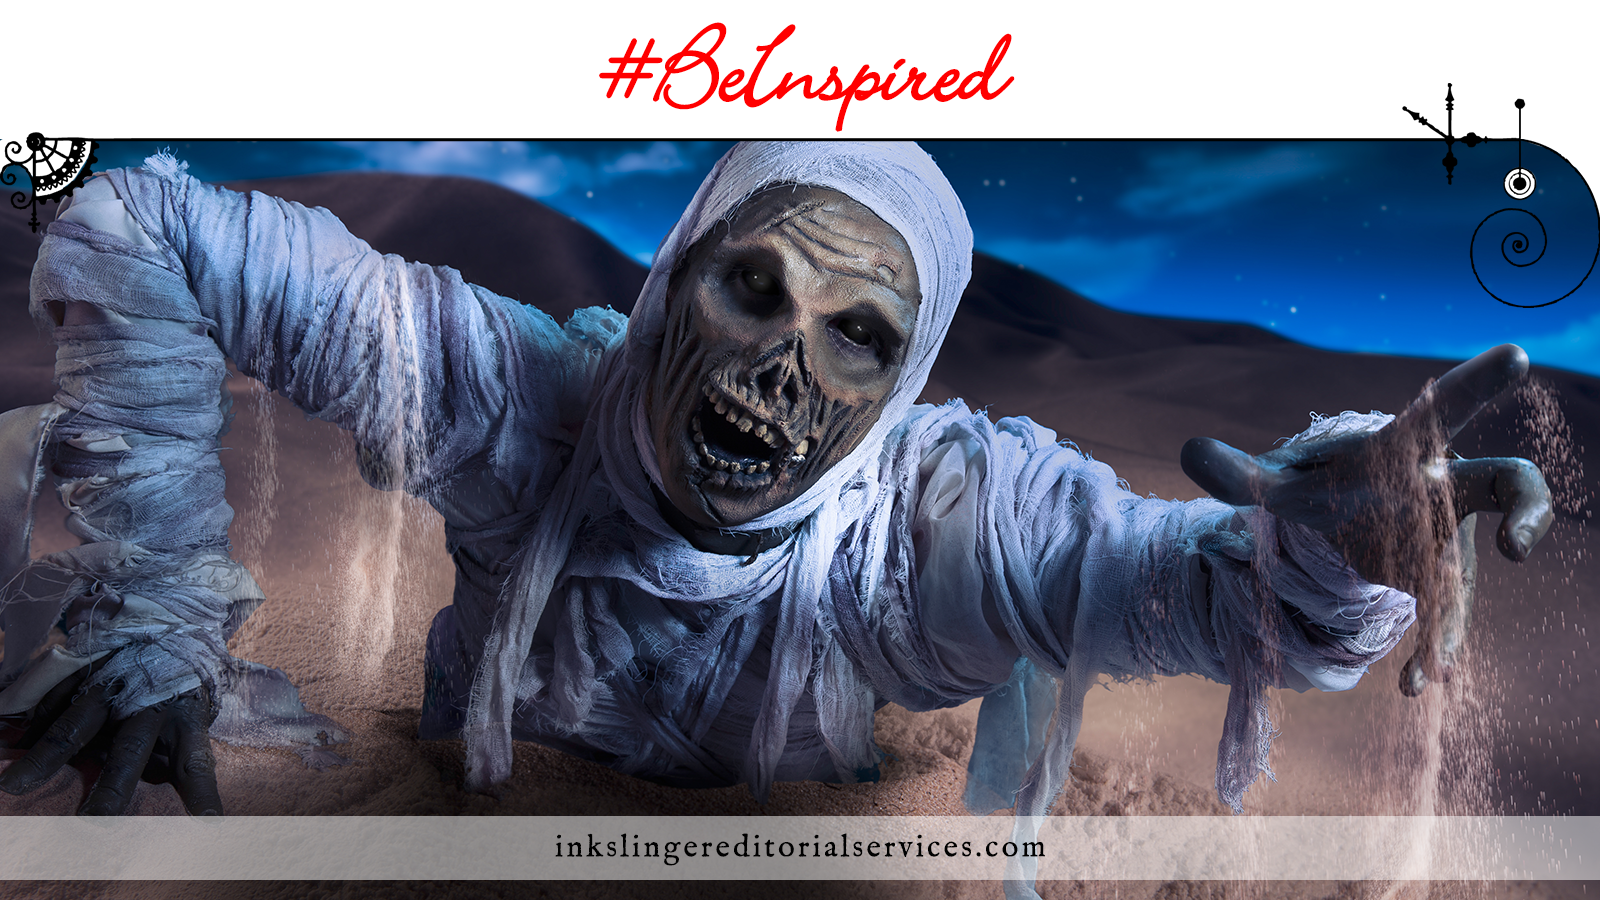 A desiccated mummy crawling through desert and reach toward you.